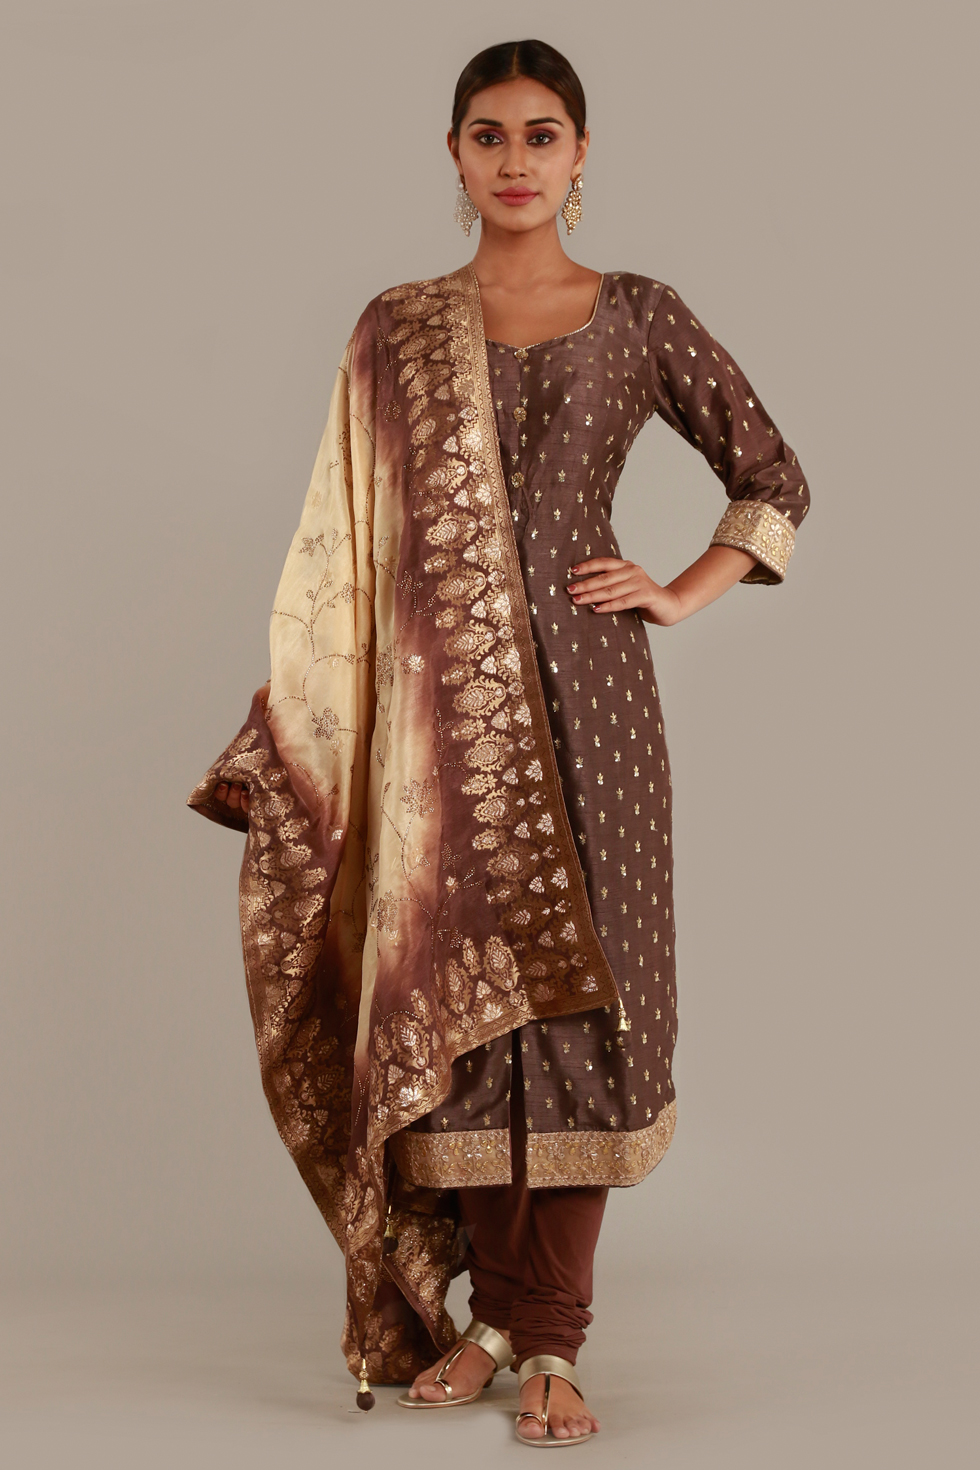 Deep brown kurta and churidar set with gold butis and two tone dupatta with gold details